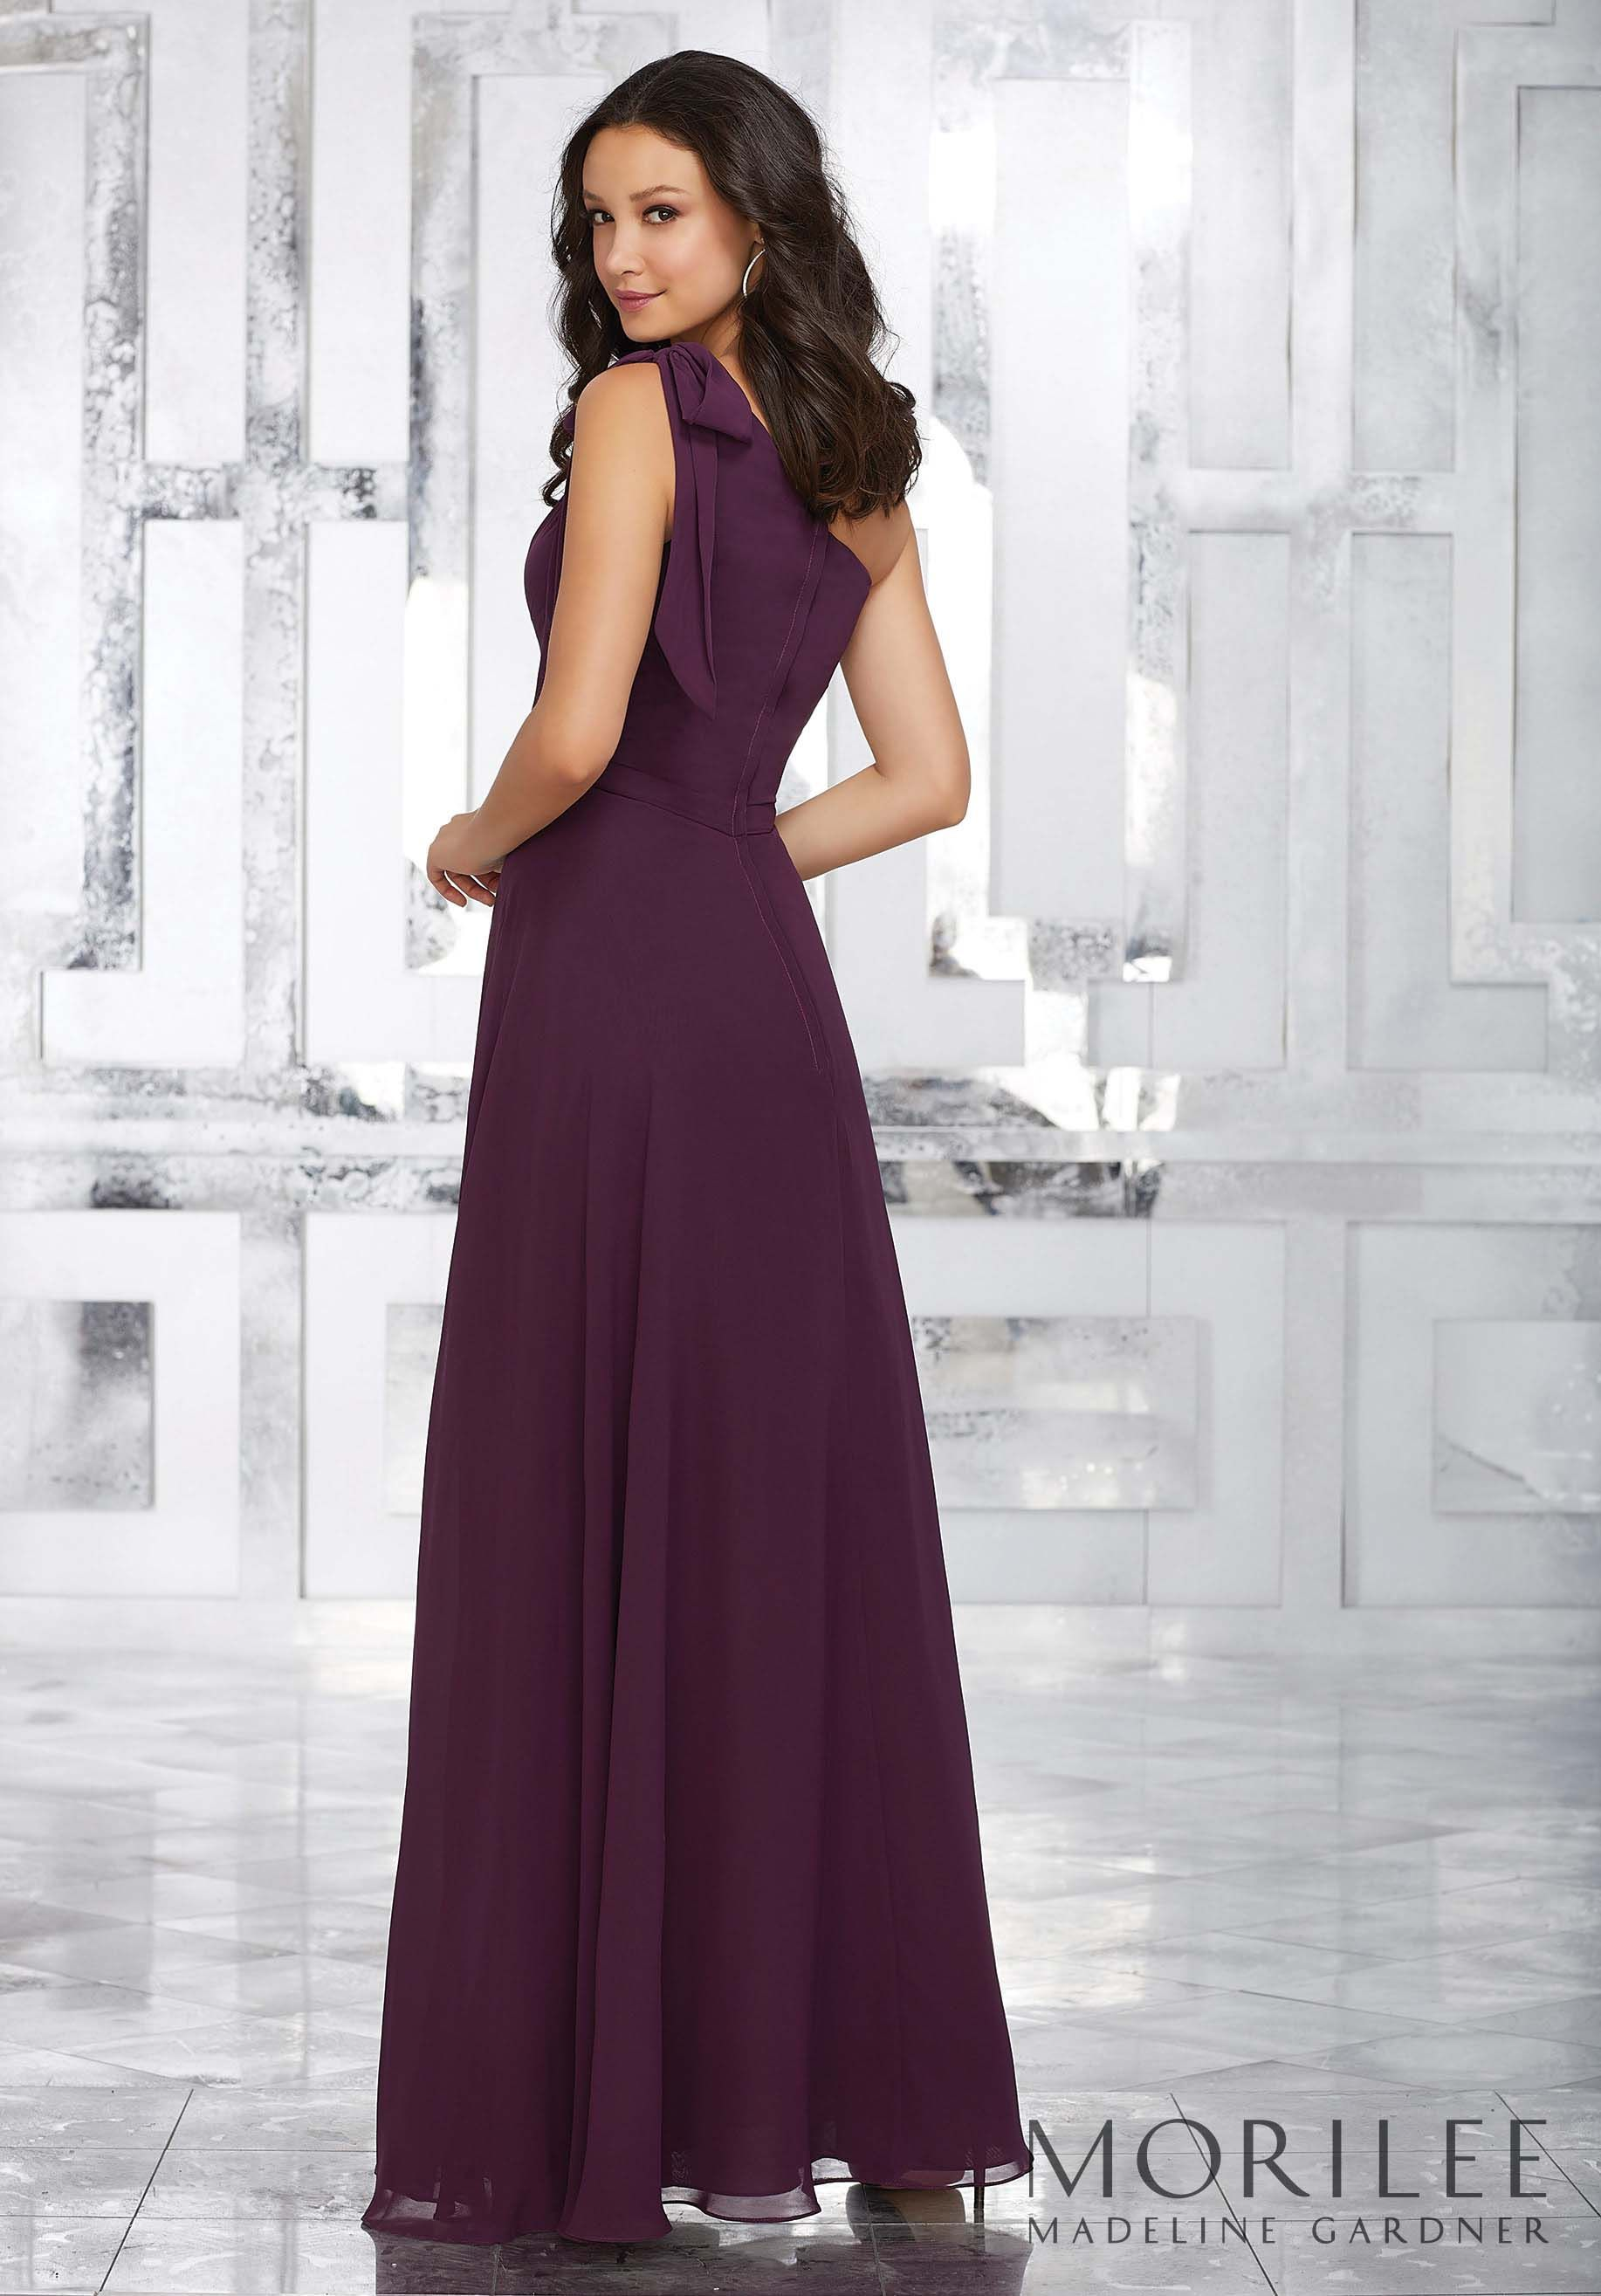 33f31ae4831 This Glamorous One Shoulder Chiffon Bridesmaid Dress Features a Removable  Shoulder Bow and Flowy A-line Silhouette. Available in 34 colors.